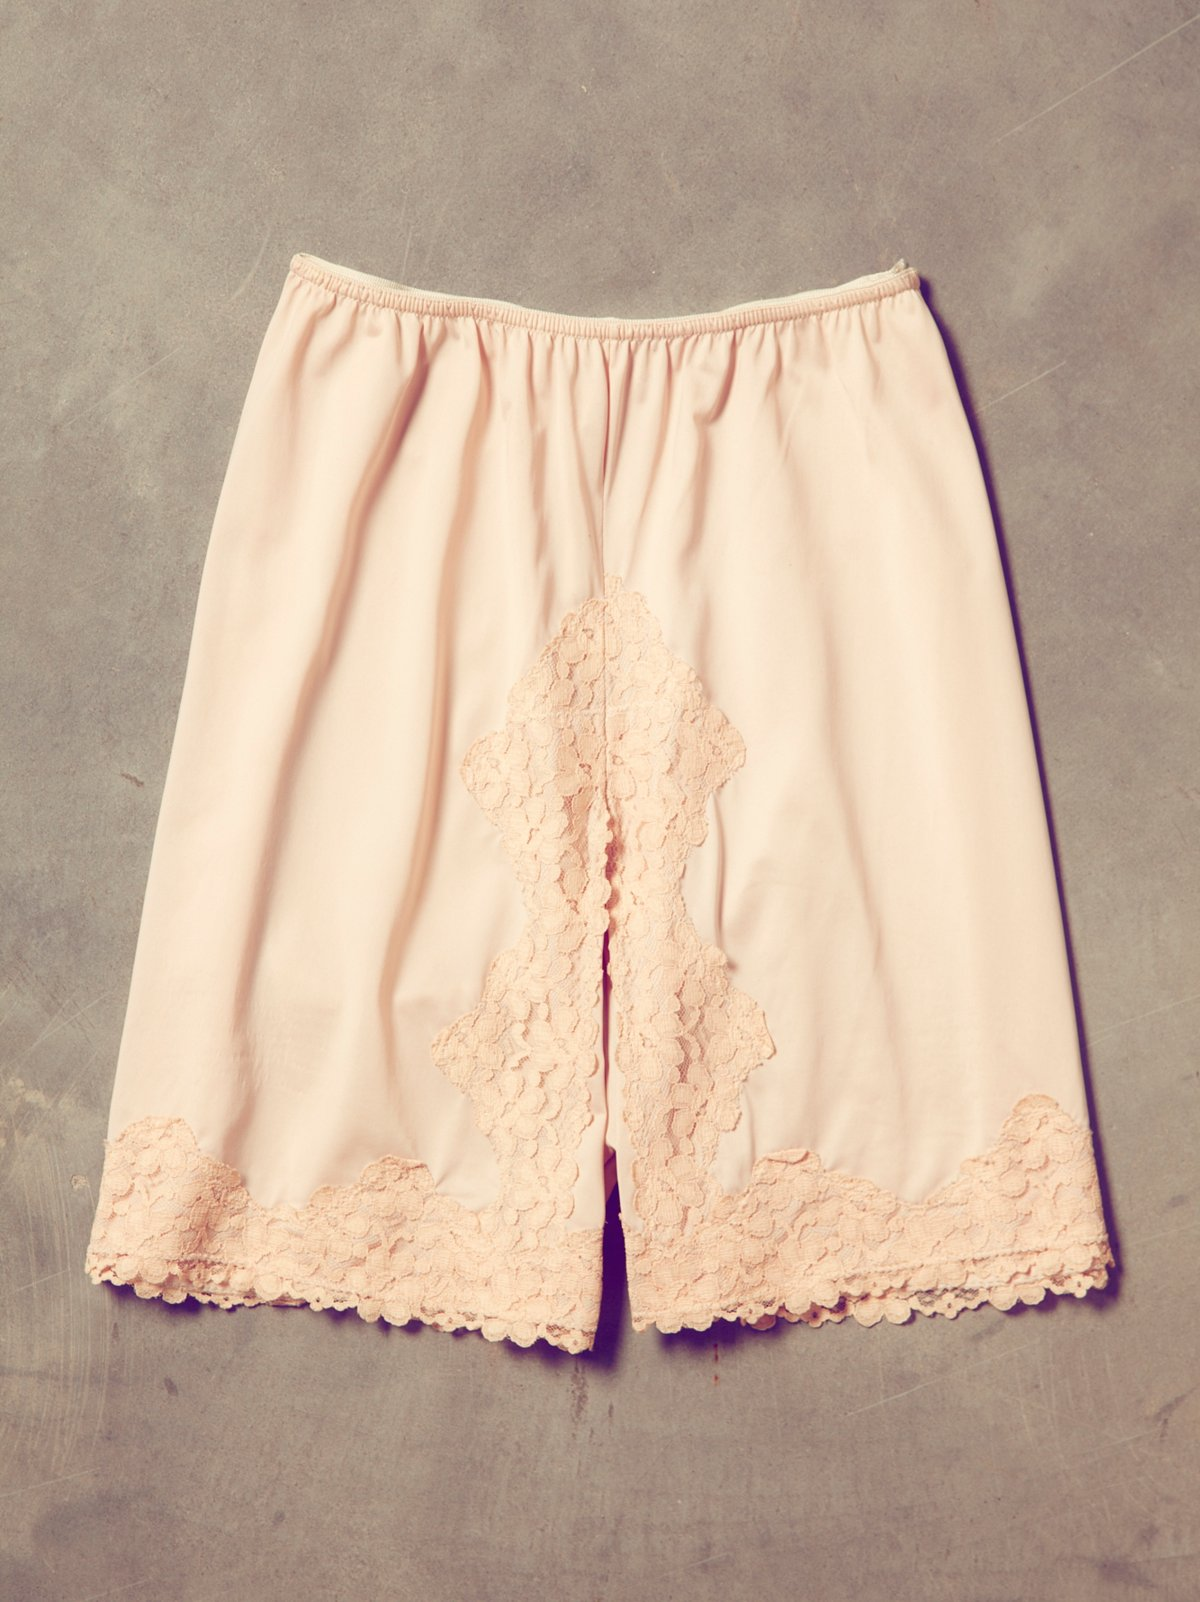 Vintage 1950s Lace Bloomers